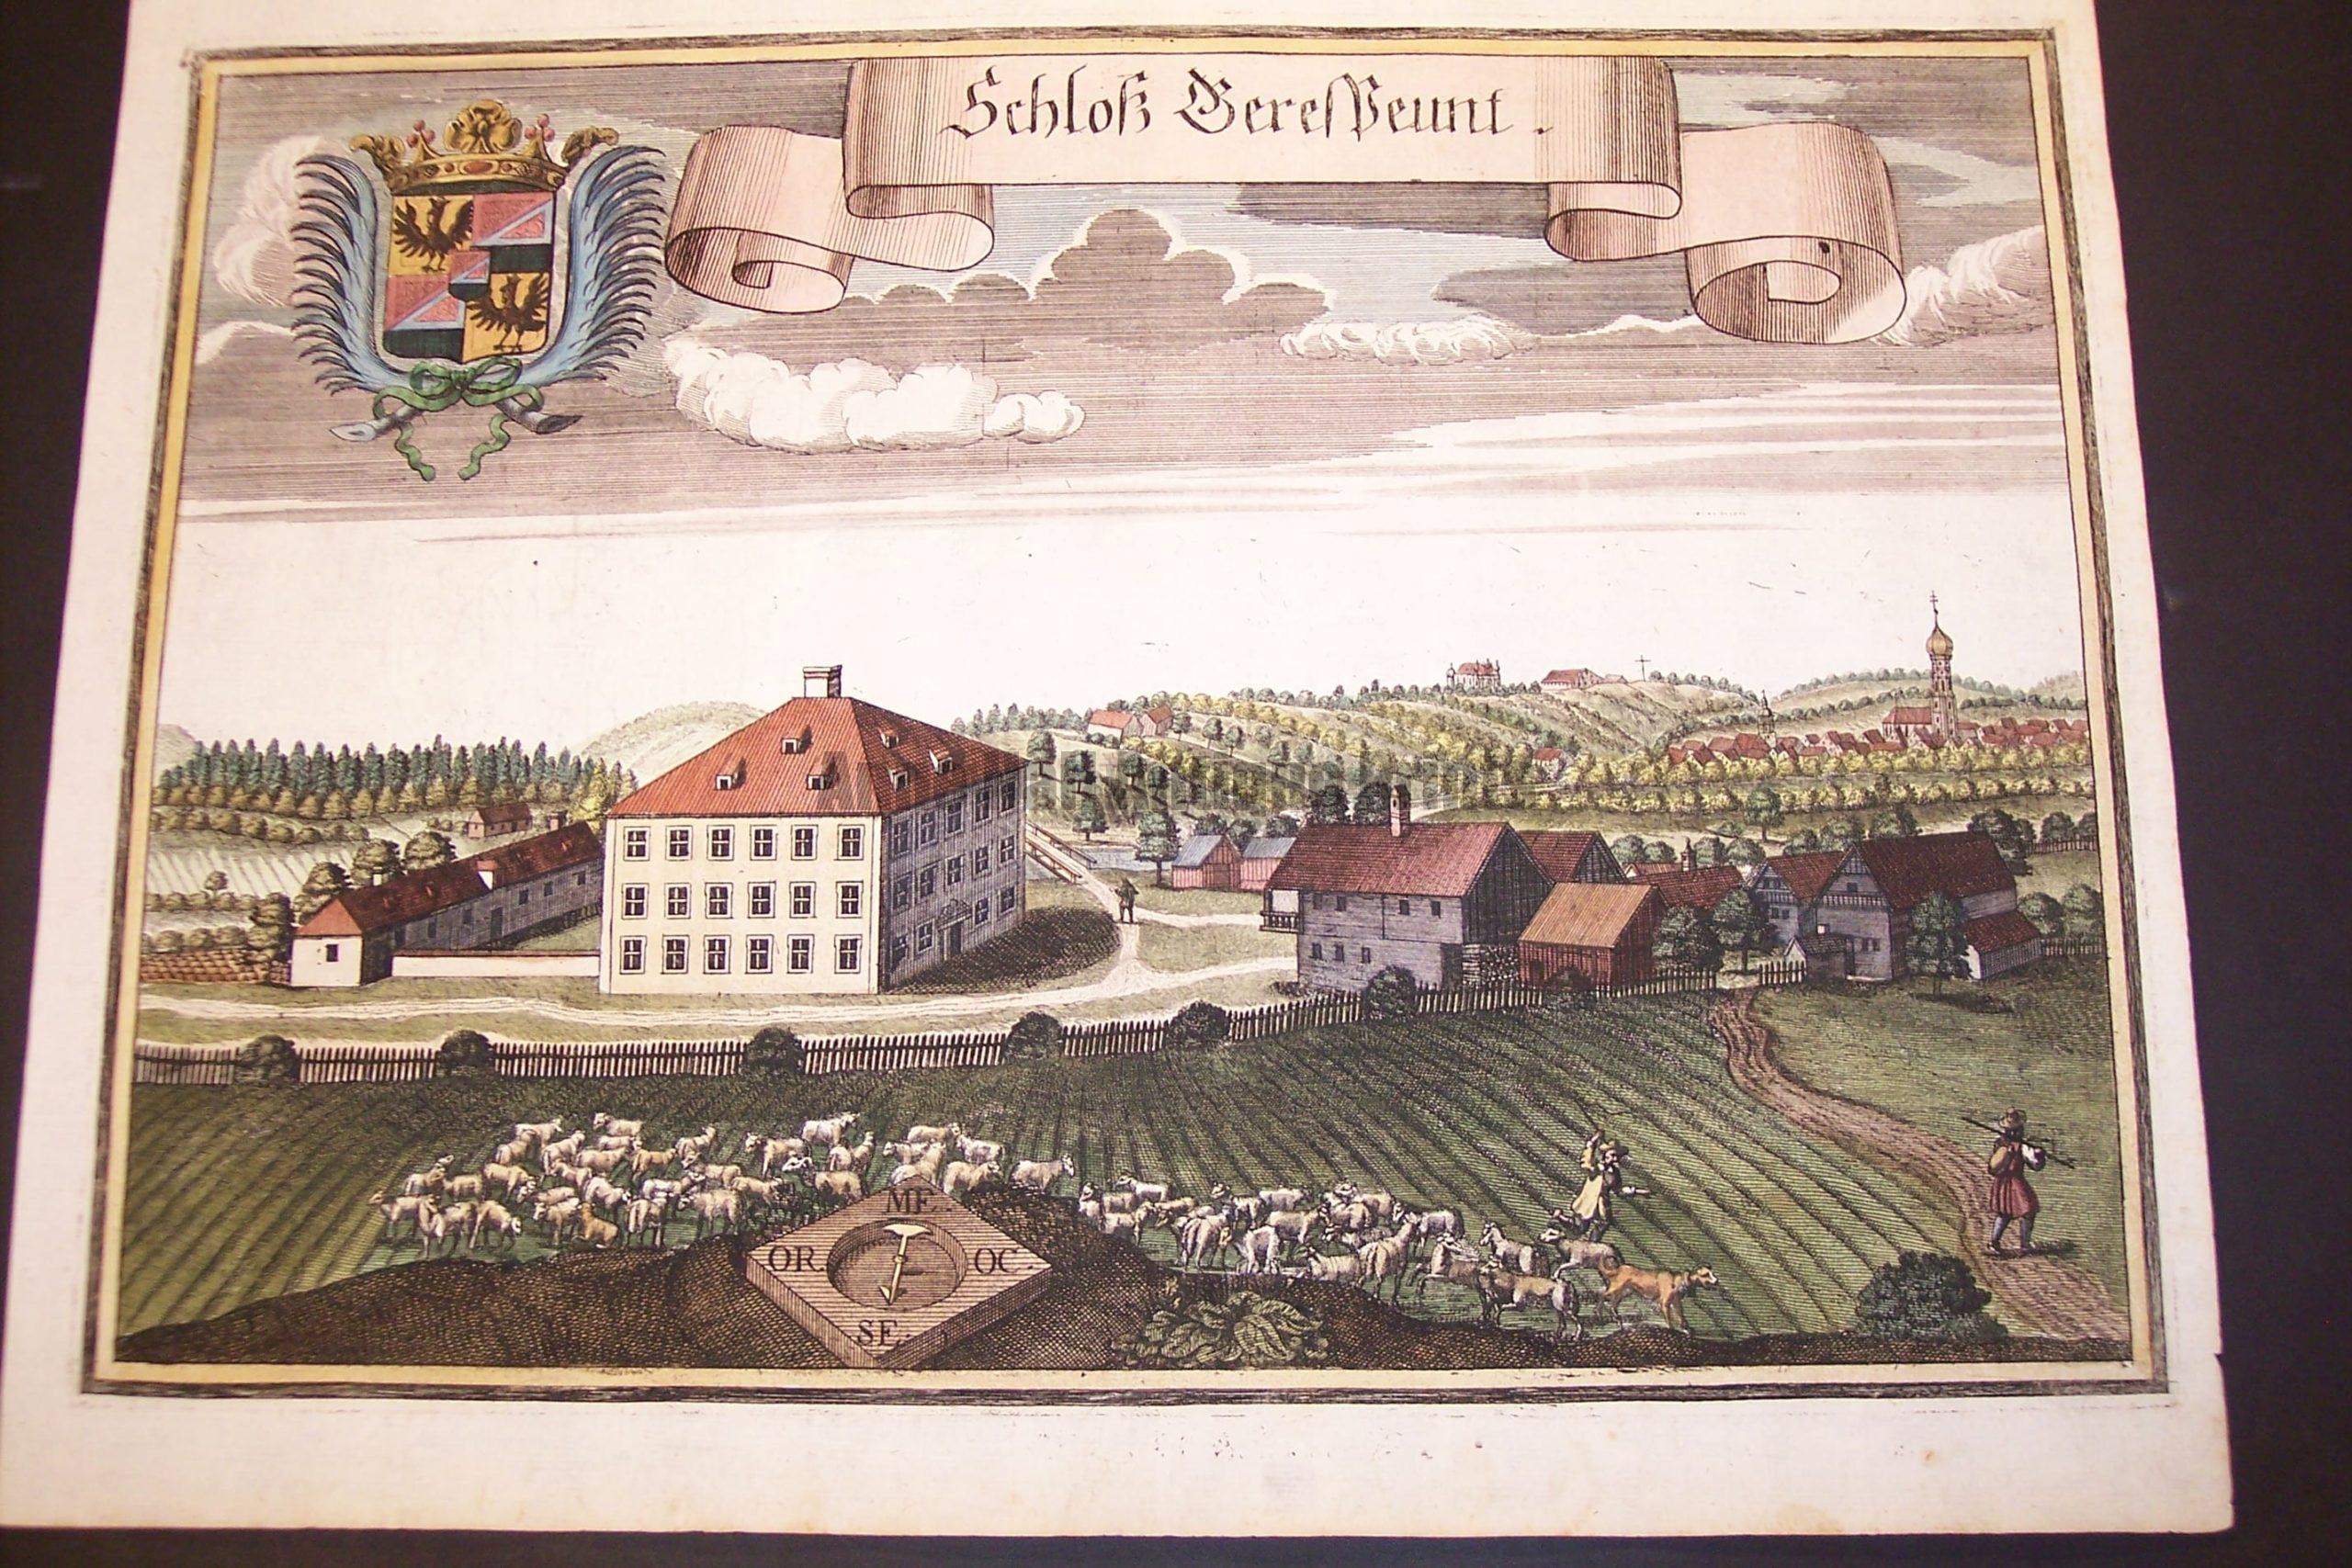 Werning Bavaria Rare Hand Colored Castle Engraving 1703. #1580